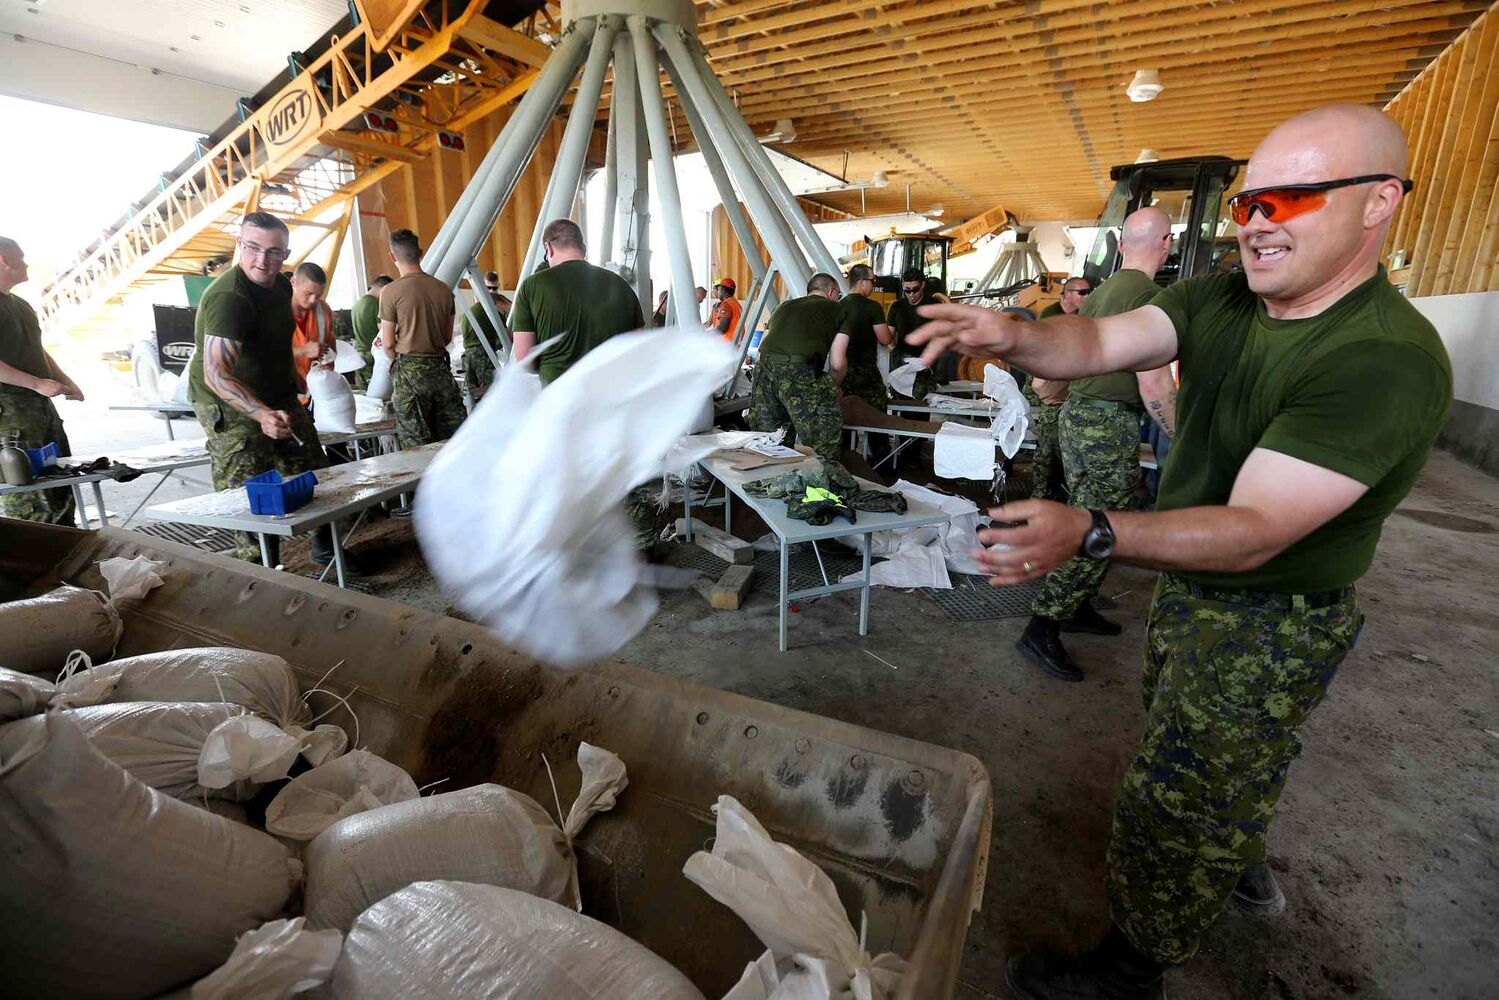 Captain Jerry Larkin, one of the soldiers from CFB Shilo, makes sandbags alongside workers from the Municipality of Portage la Prairie on Saturday.